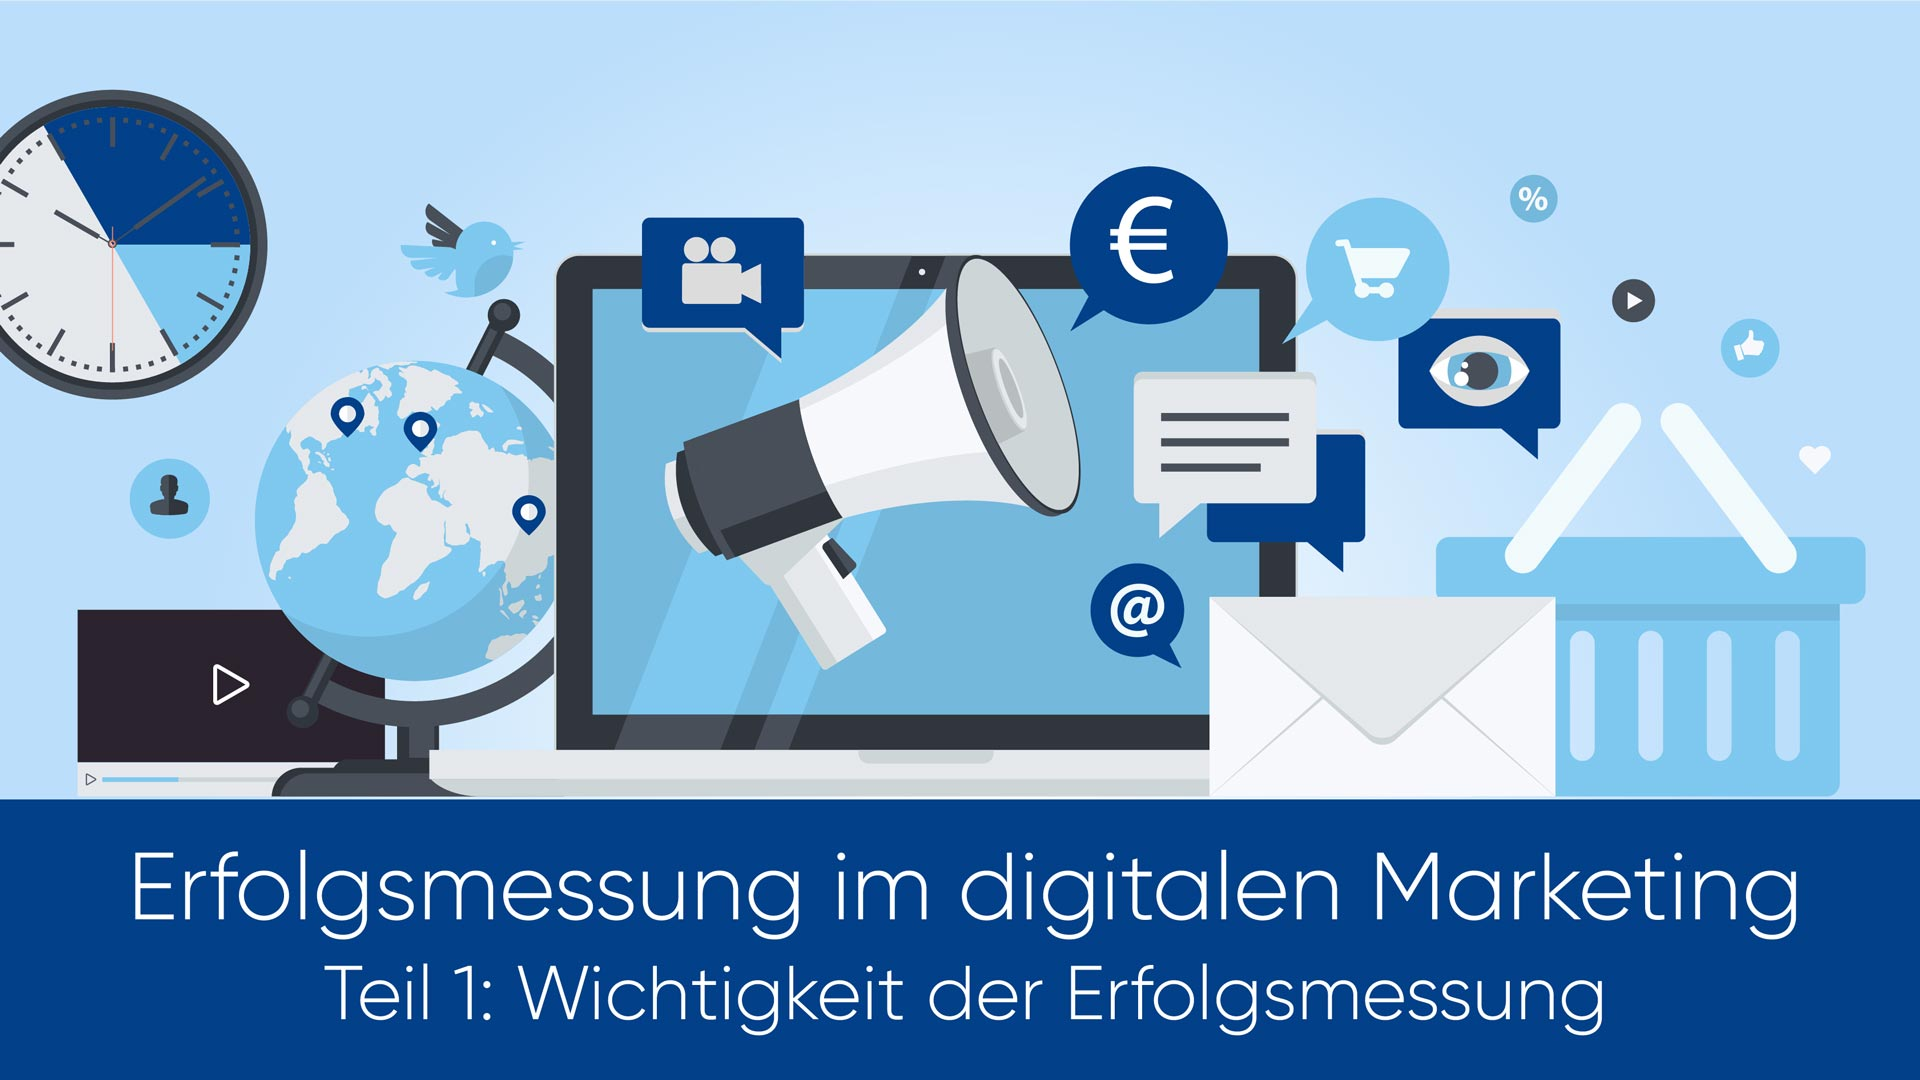 wichtigigkeit_erfolgsmessung_digitale_marketing_strategie